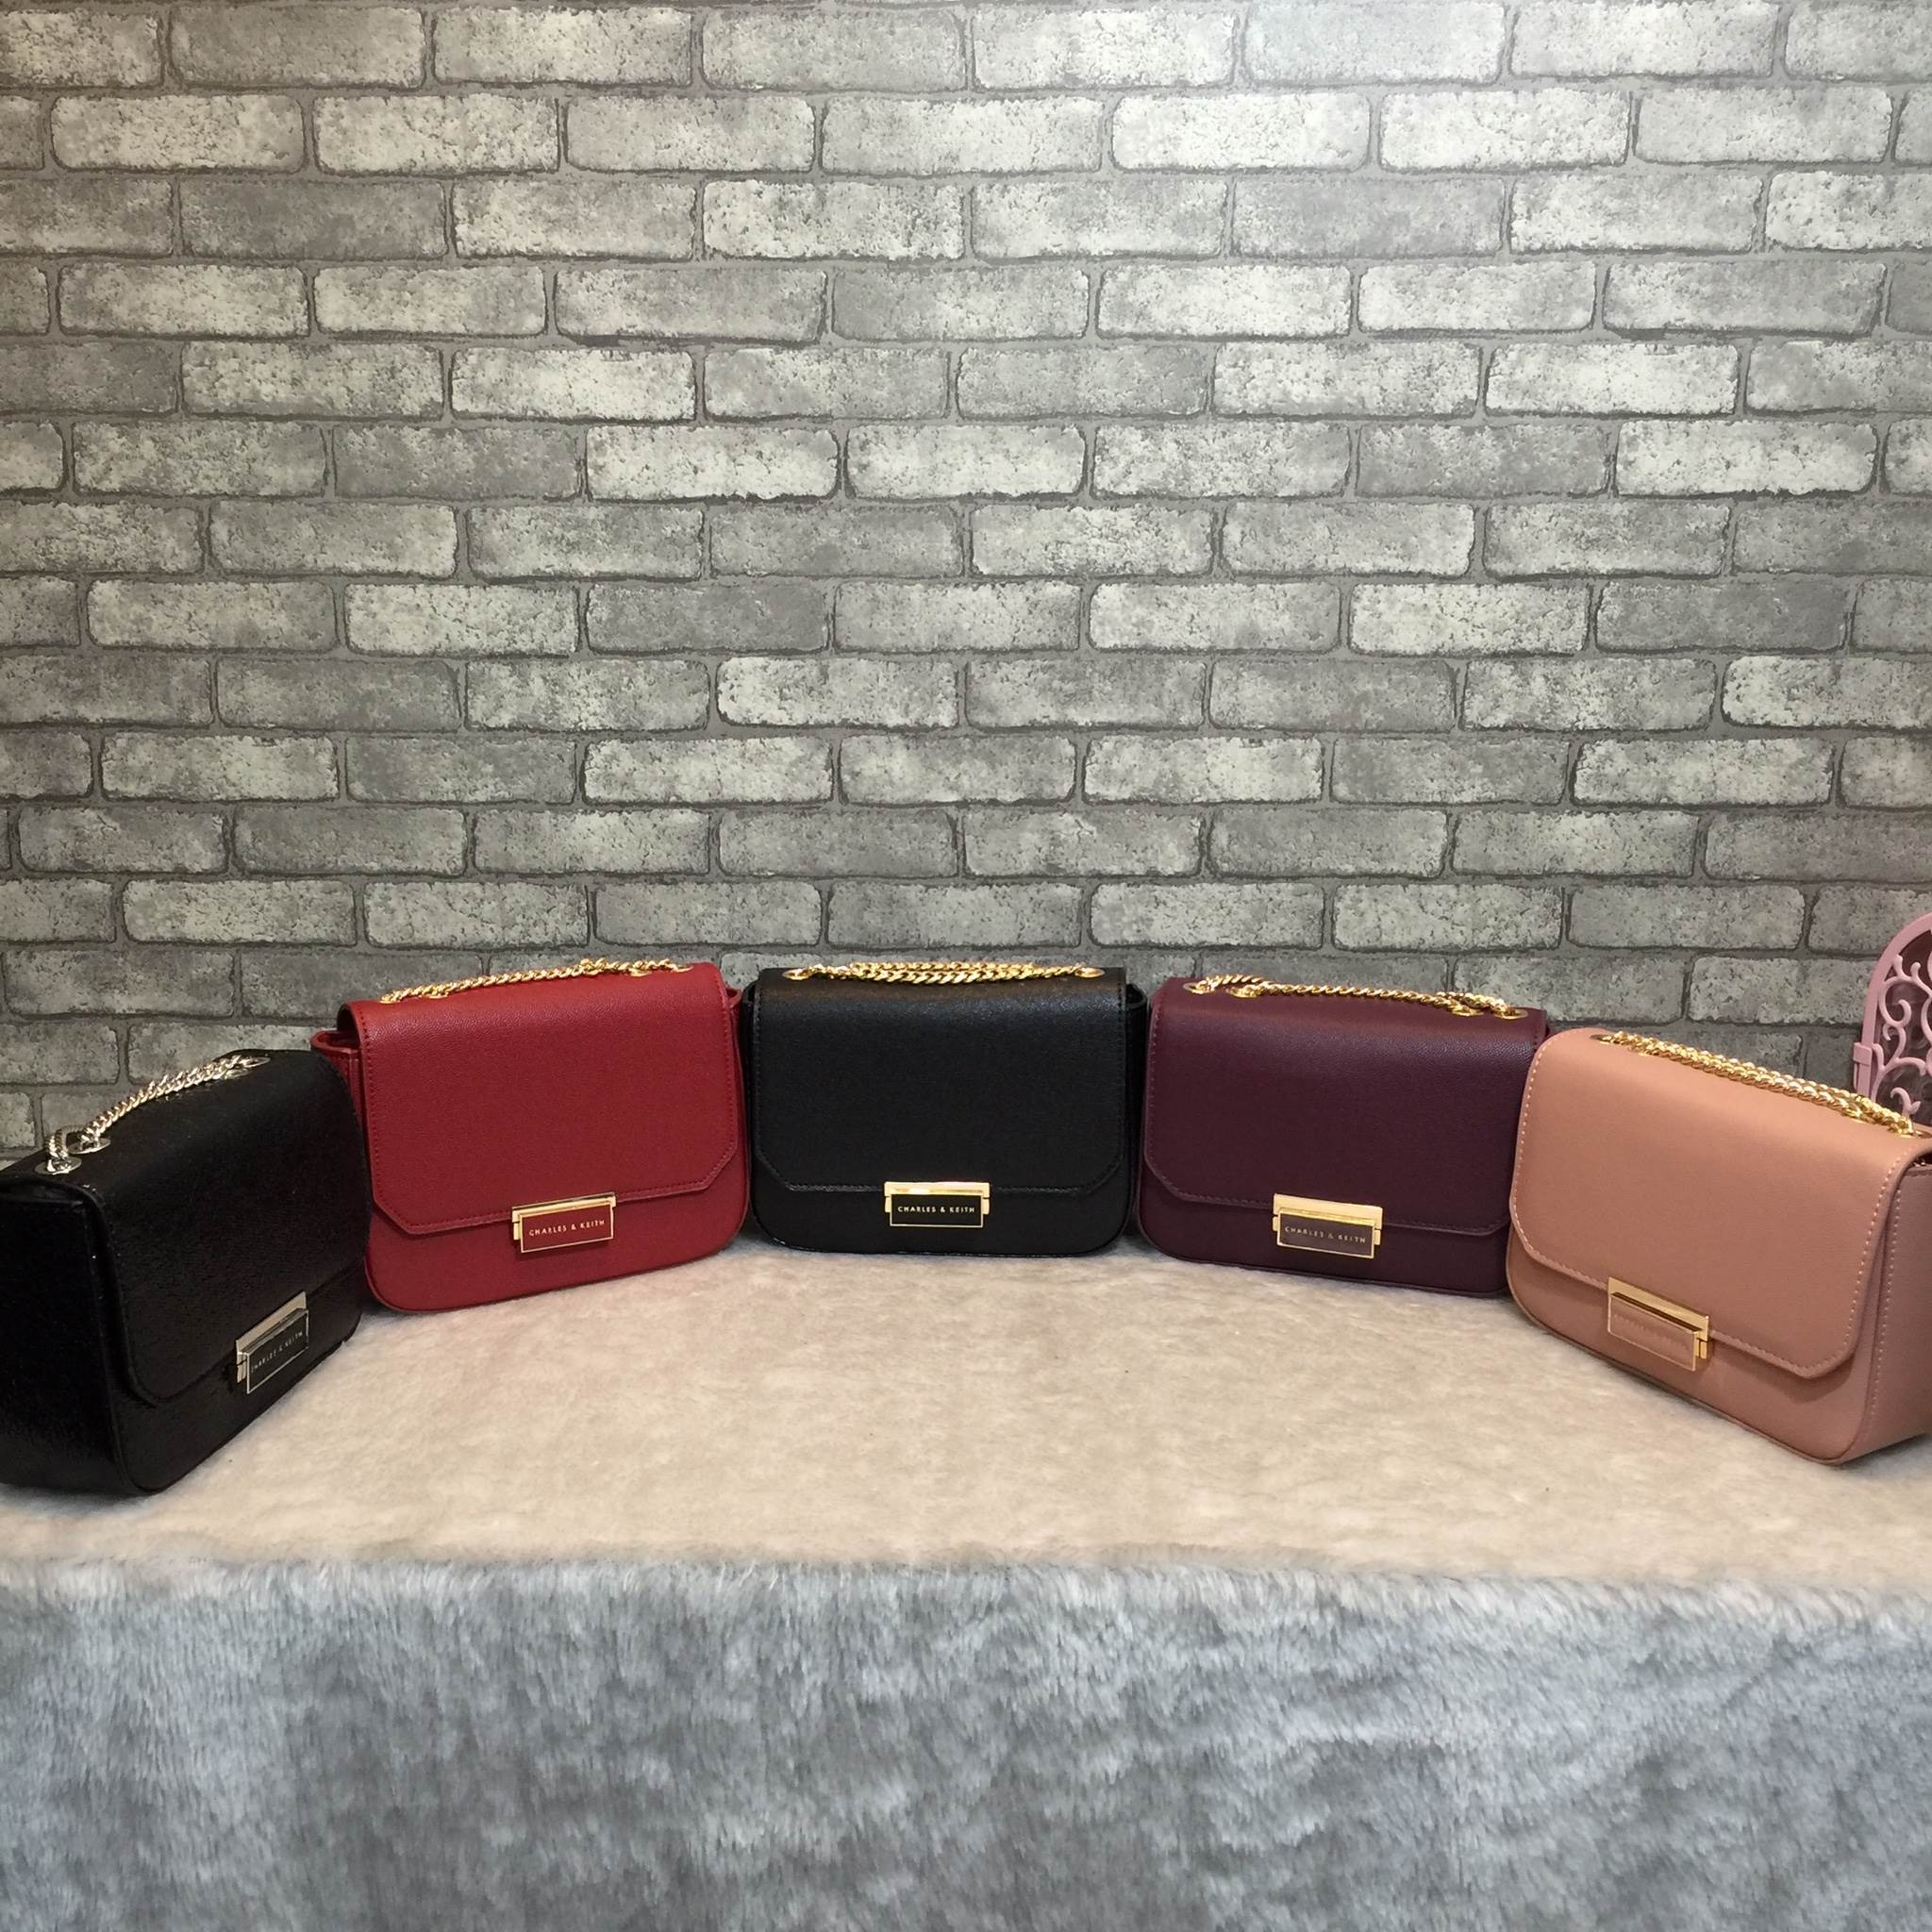 CHARLES & KEITH Push-Lock Chain Sling Bag 2018 มีพร้อมส่ง 5 สีค่ะ * สินค้า outlet